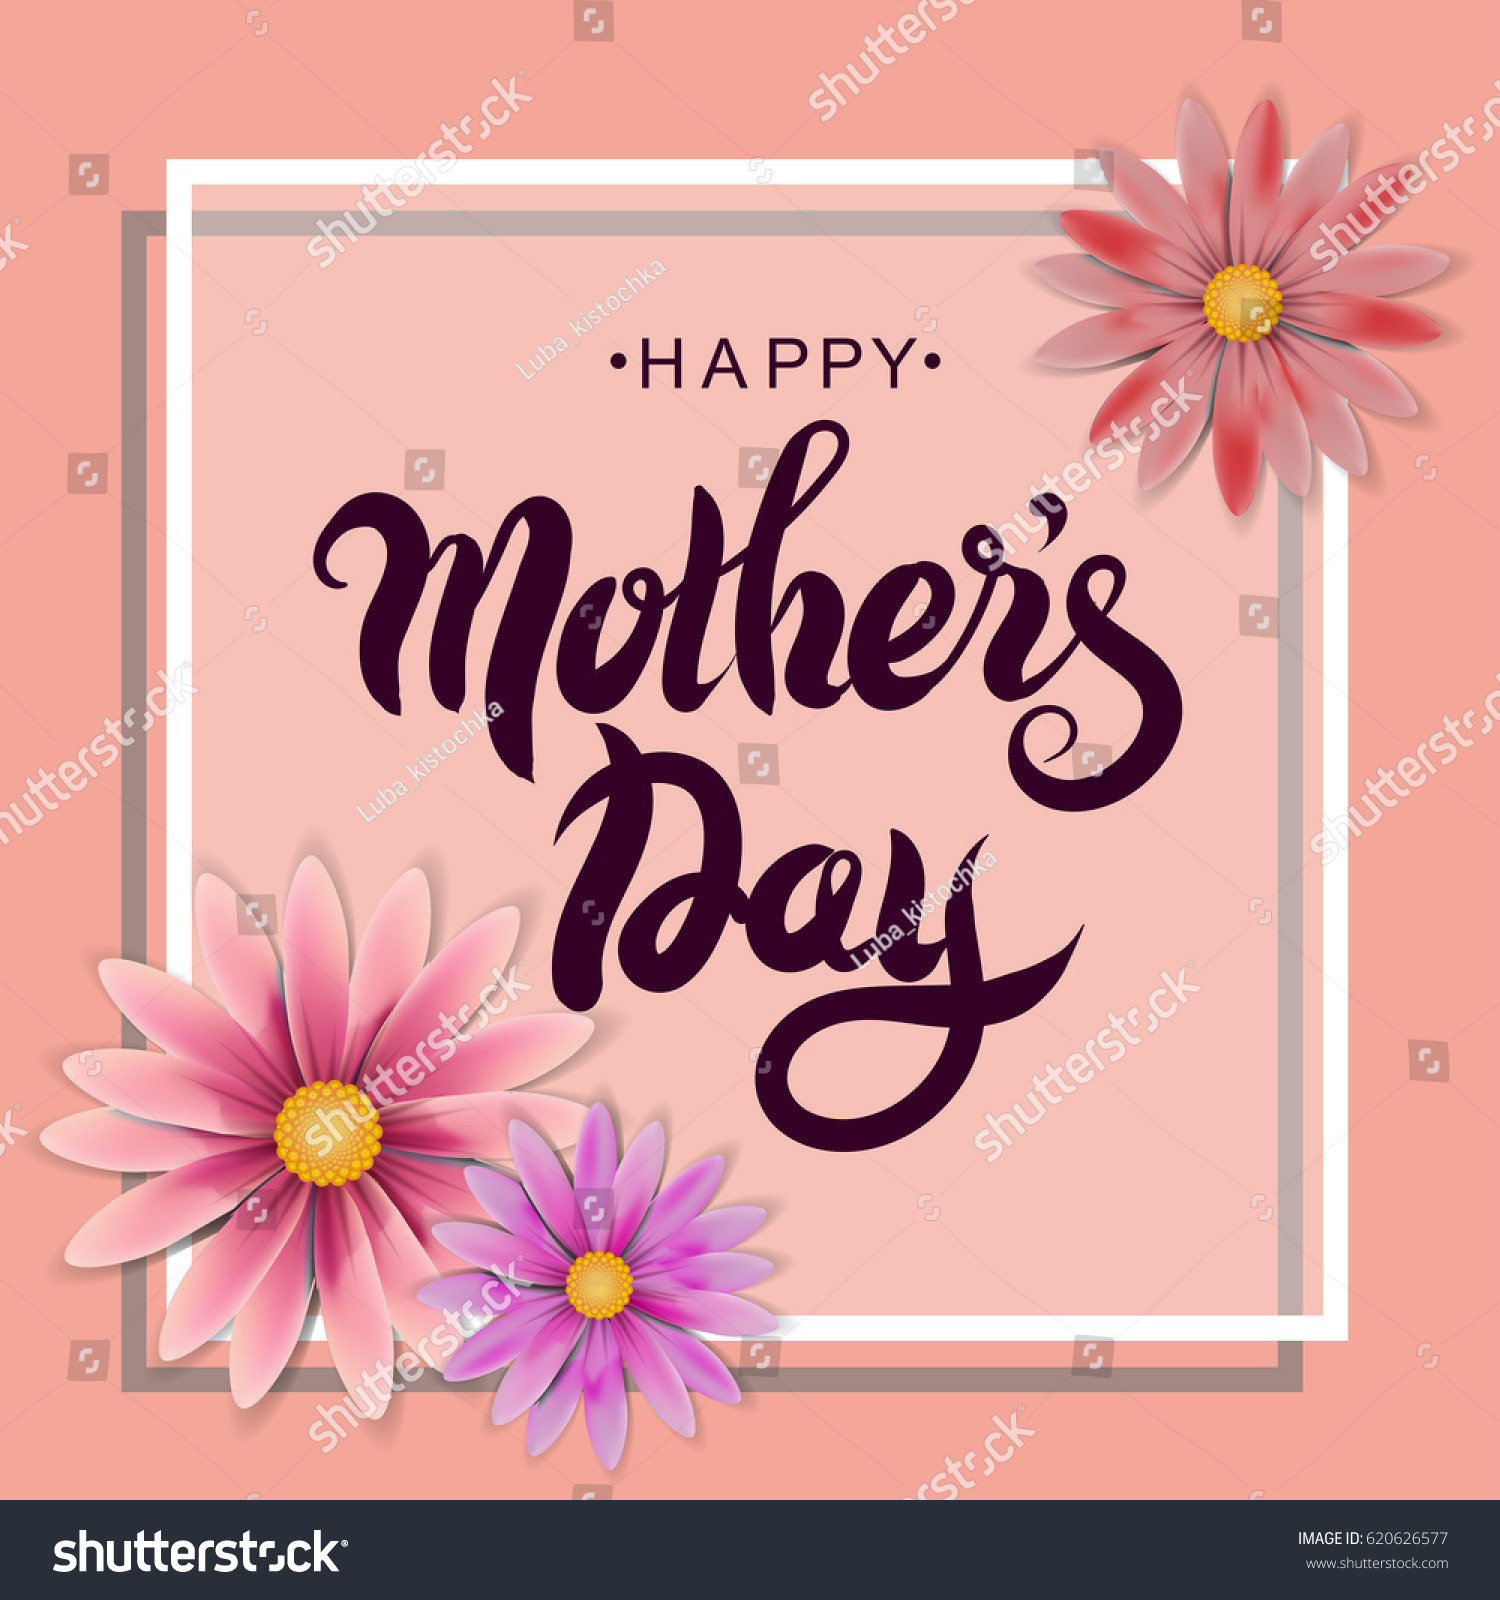 Mothers day greeting card vector illustration stock vector mothers day greeting card vector illustration lettering calligraphy happy mothers kristyandbryce Choice Image